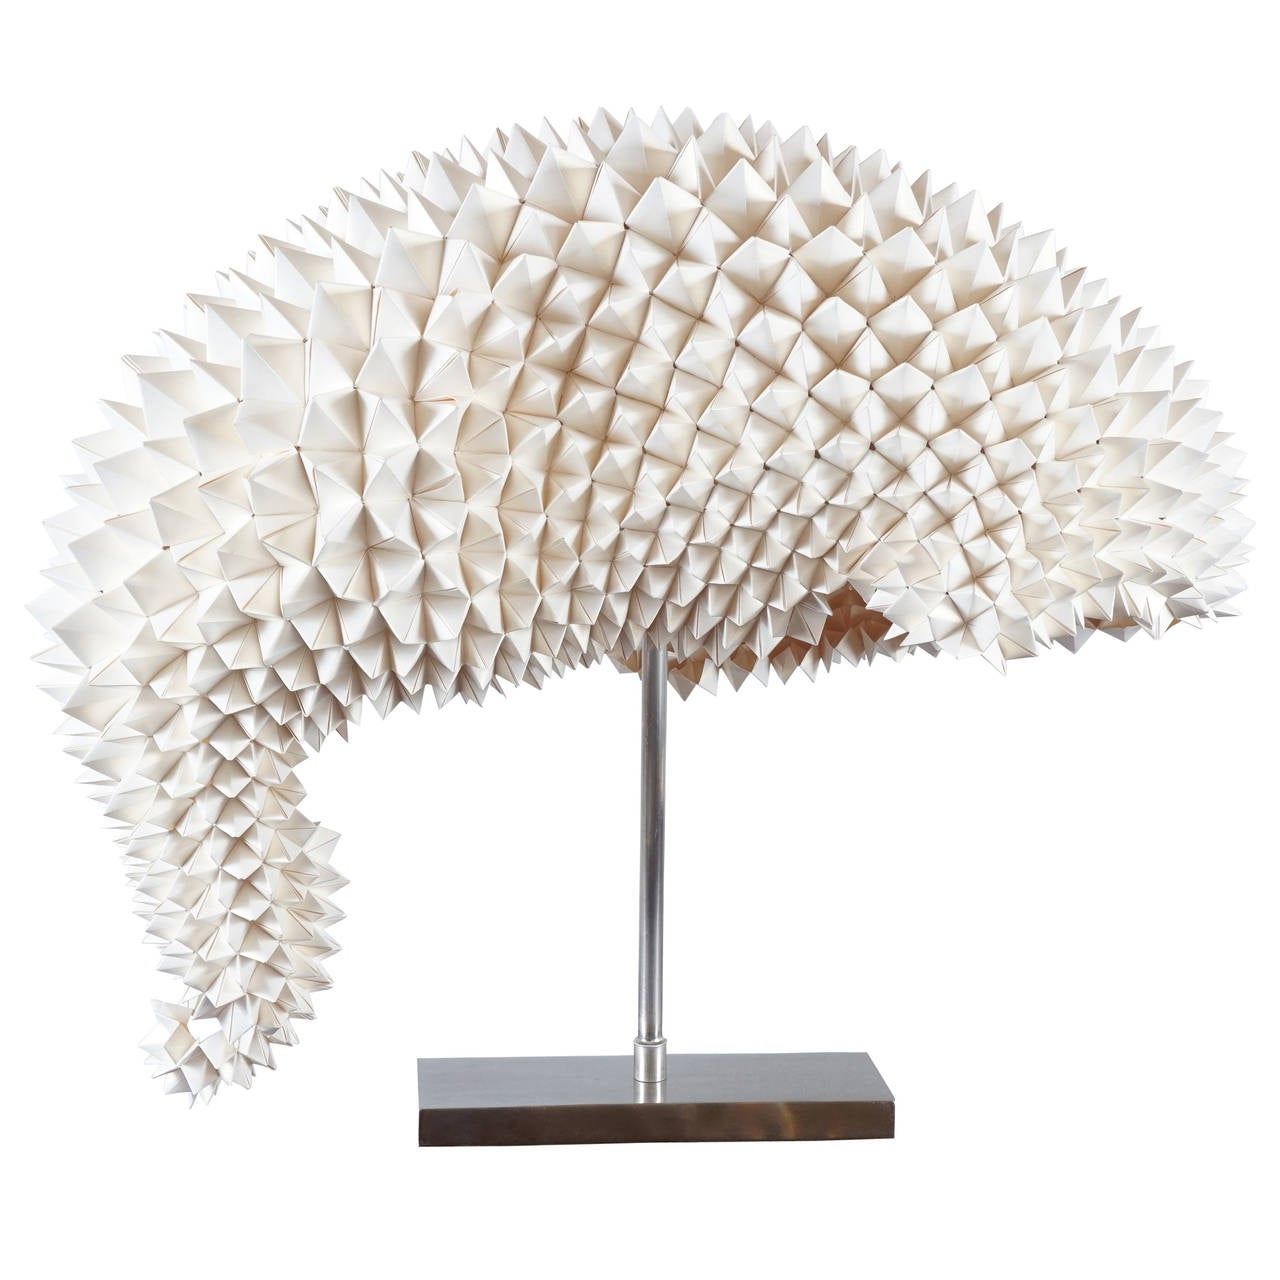 Dragons tail table lamp at 1stdibs dragons tail table lamp for sale aloadofball Choice Image